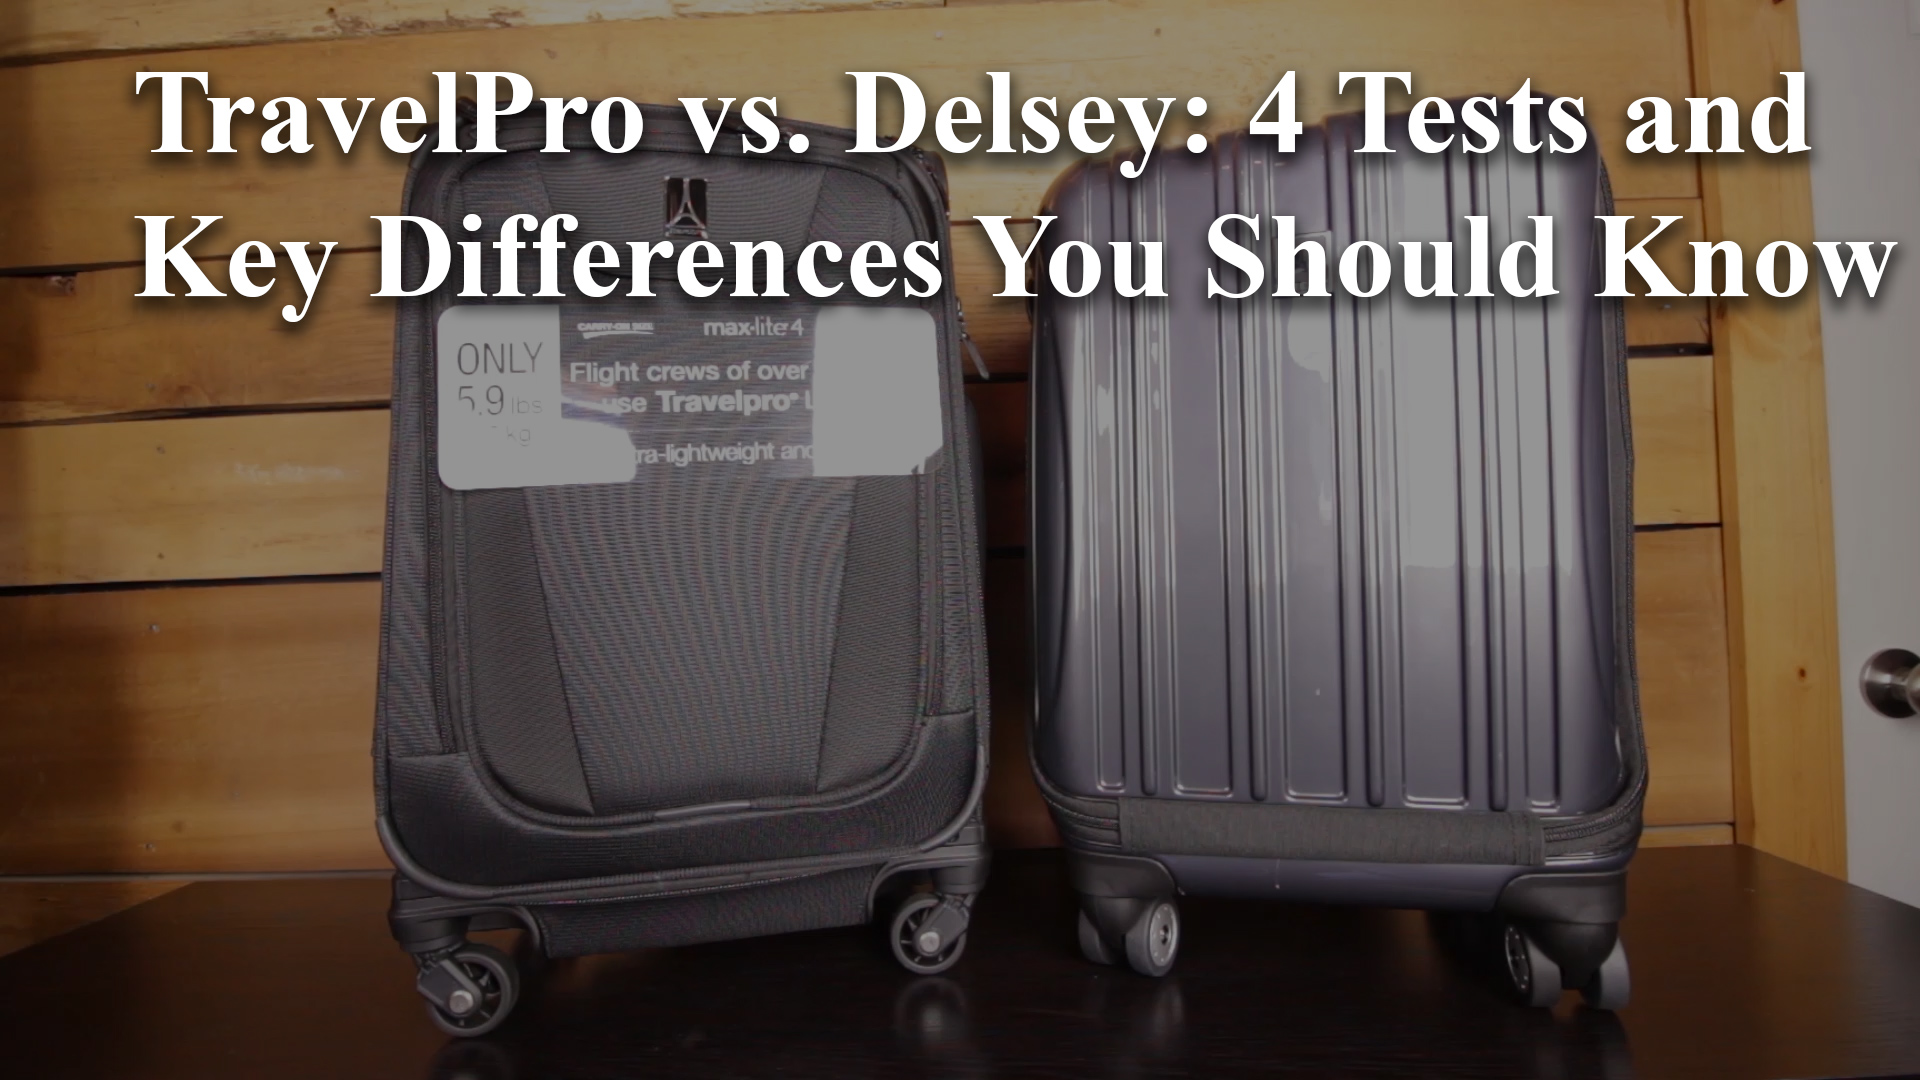 TravelPro vs. Delsey: 4 Tests and Key Differences You Should Know